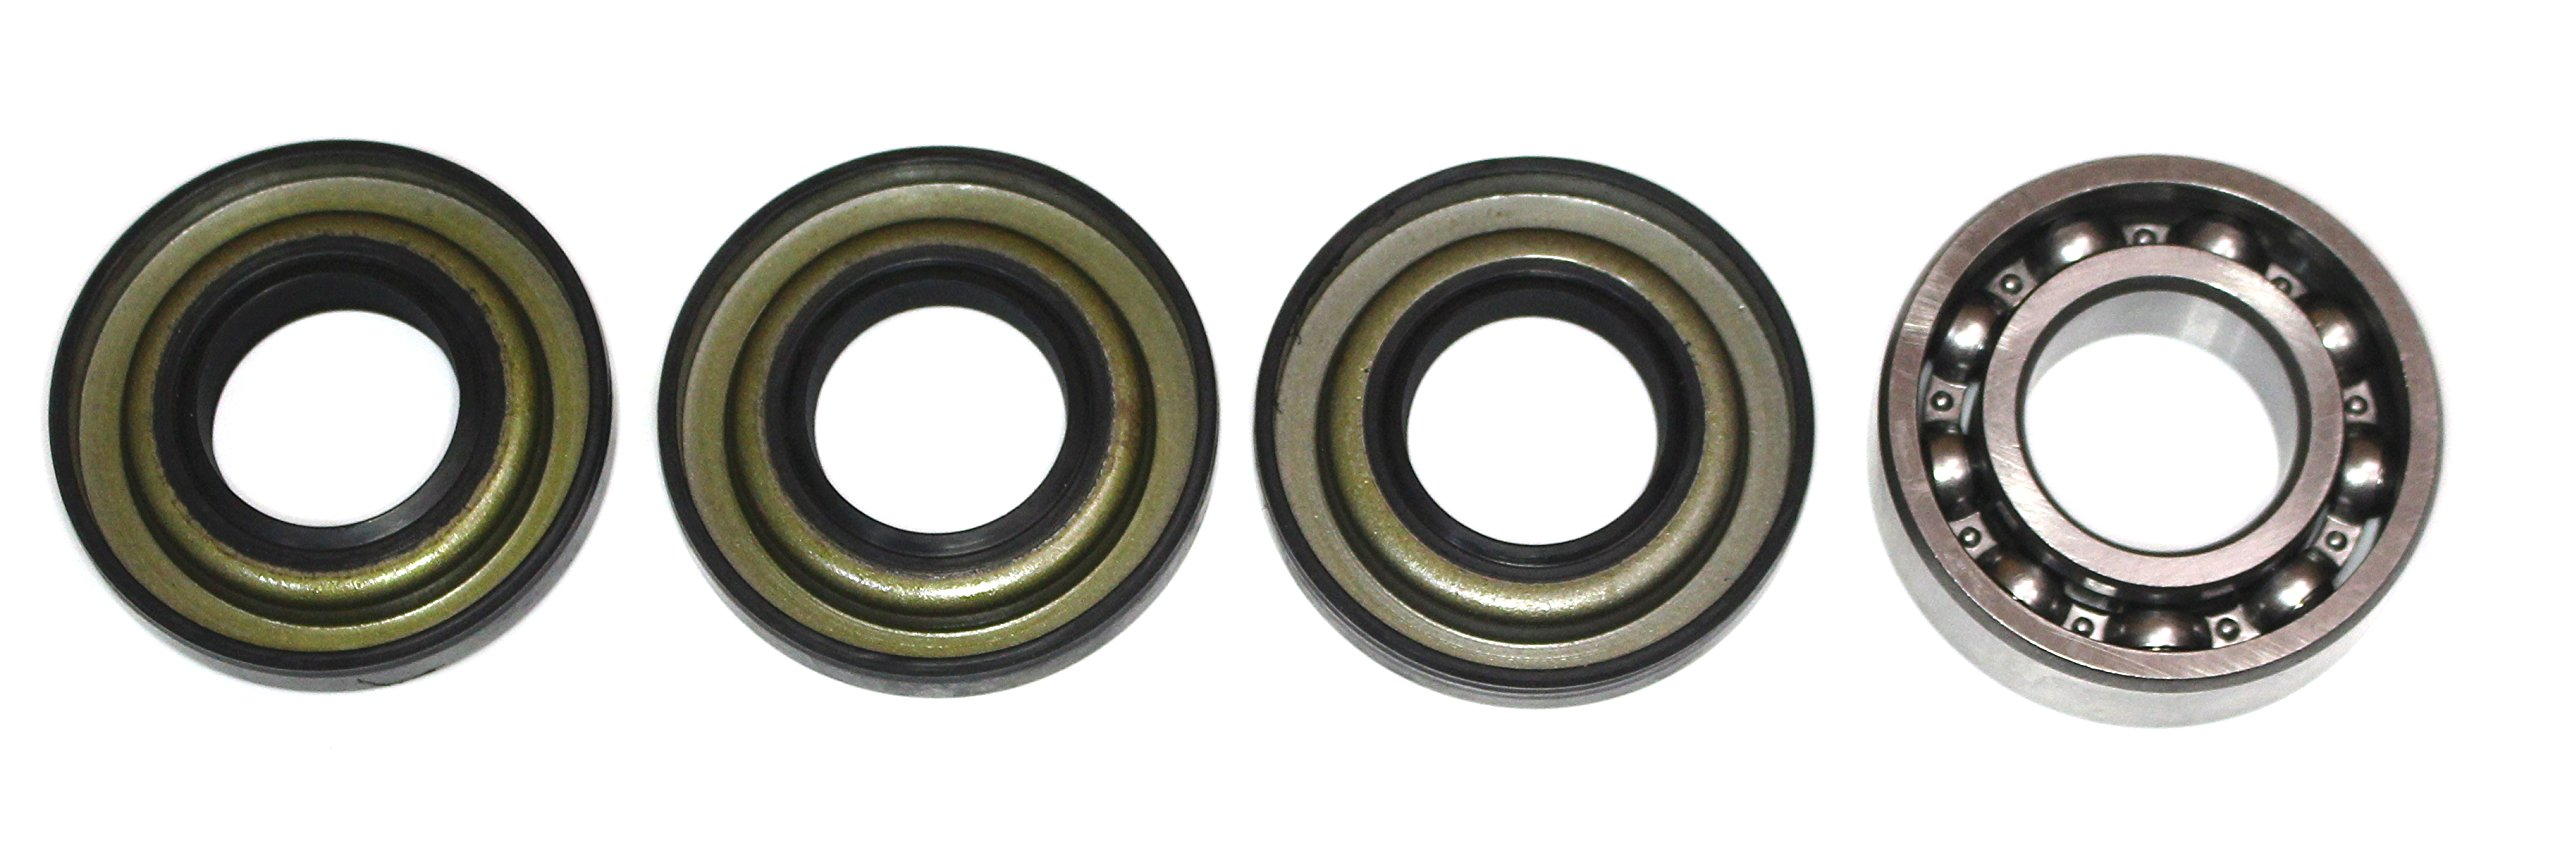 Bearing Housing Rebuild Kit Yamaha 05-08 Vx110 Deluxe Sport